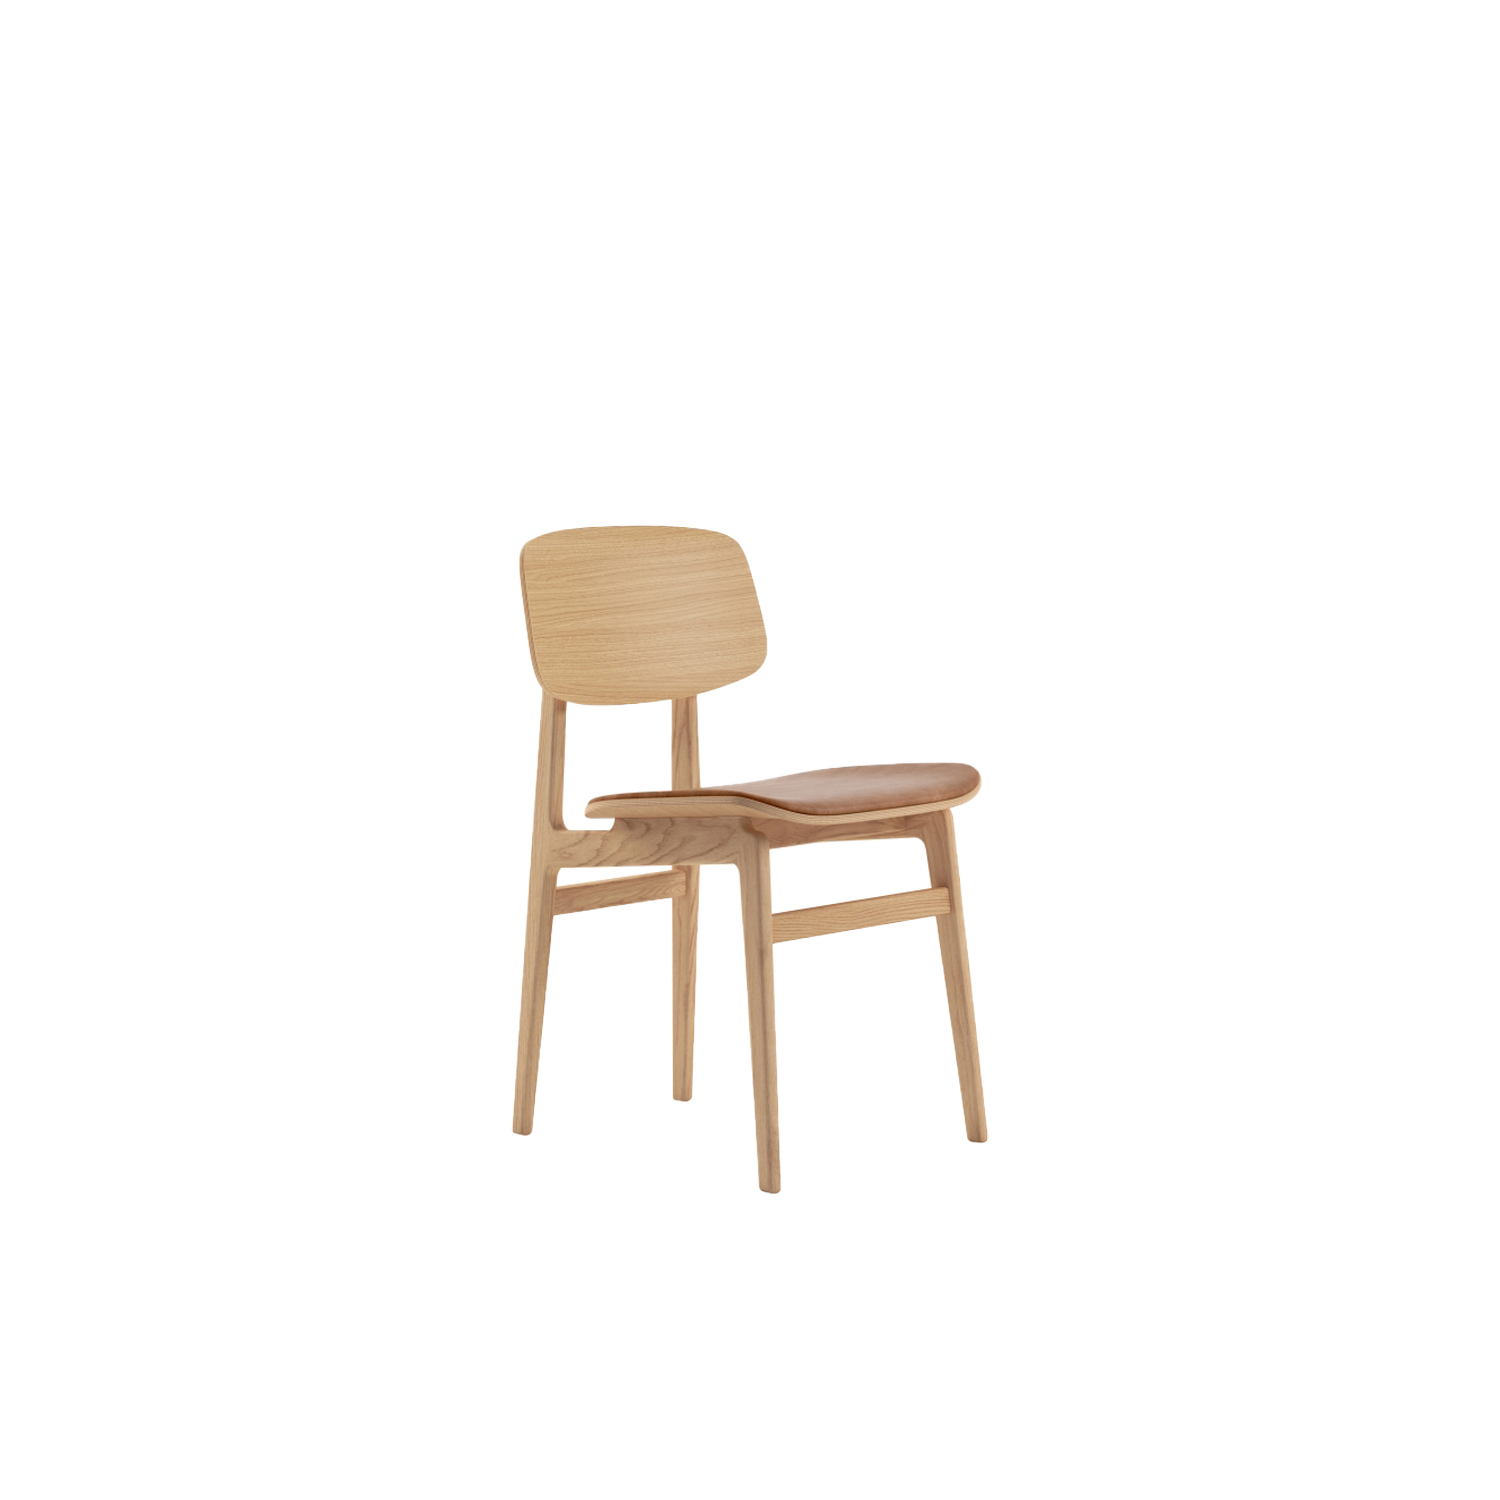 NY11 Dining Chair Upholstered - Inspired by traditional Danish elementary school chairs, the NY11 Dining Chair has a frame hand-crafted from solid oak and a seat of laminated oak veneer. The Chair came to life when designers Rune Krøjgaard and Knut Bendik Humlevik went on a mission to create a modern take on the Scandinavian dining chair. Just like a school chair it had to be both comfortable and very durable. The result is a simple and honest chair with a timeless expression.